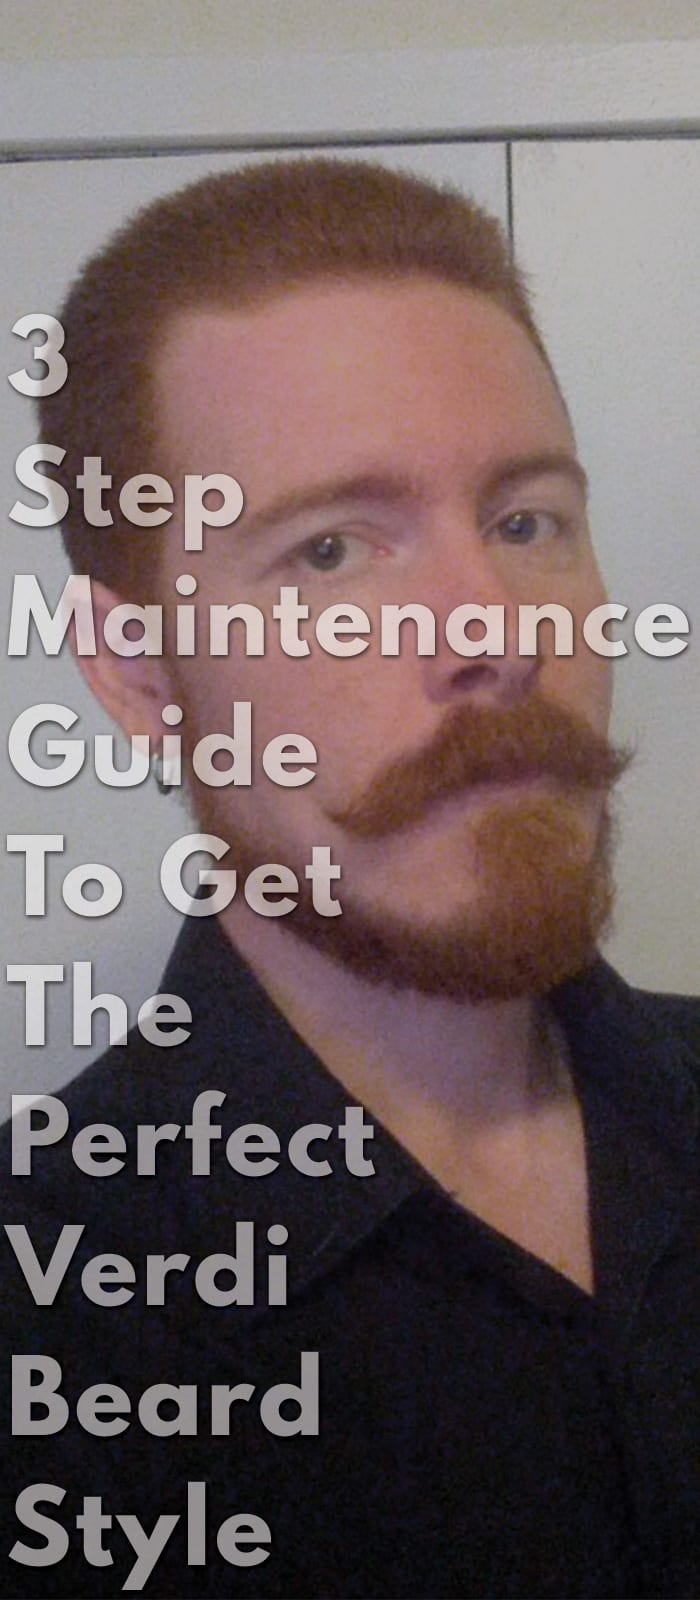 3-Step-Maintenance-Guide-To-Get-The-Perfect-Verdi-Beard-Style..